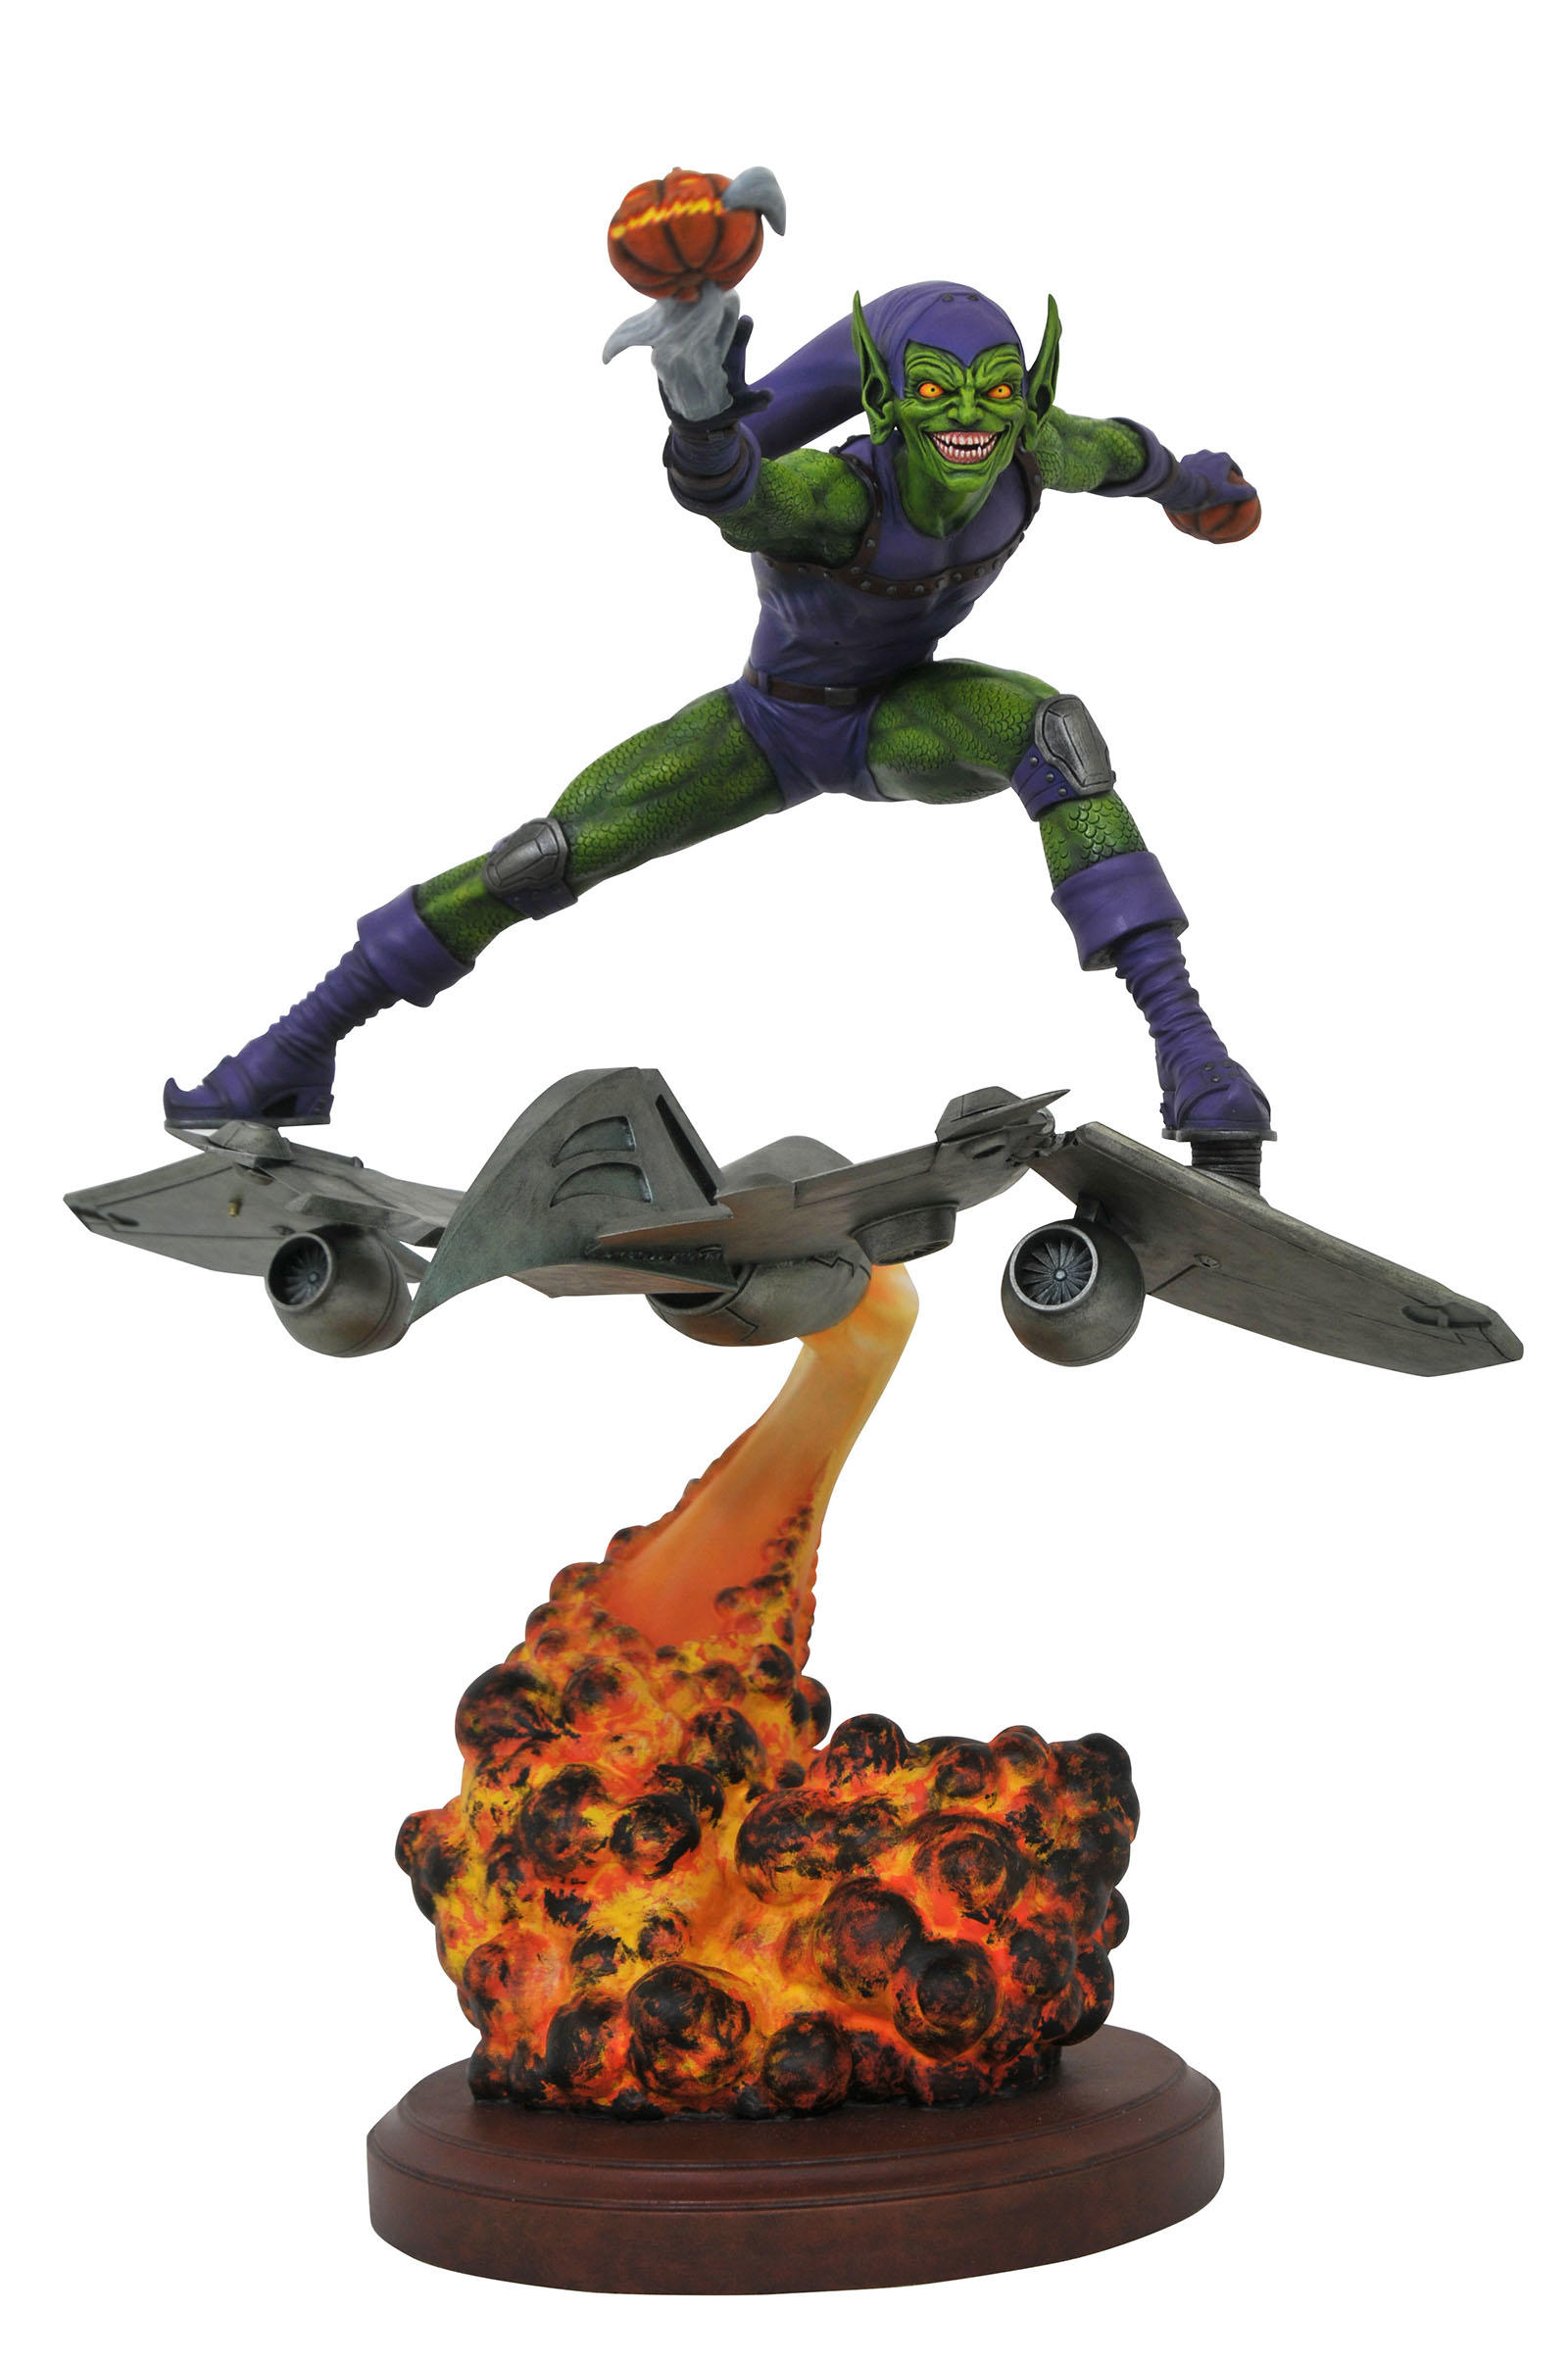 Pre-Order Diamond Marvel Premier Collection Green Goblin Statue